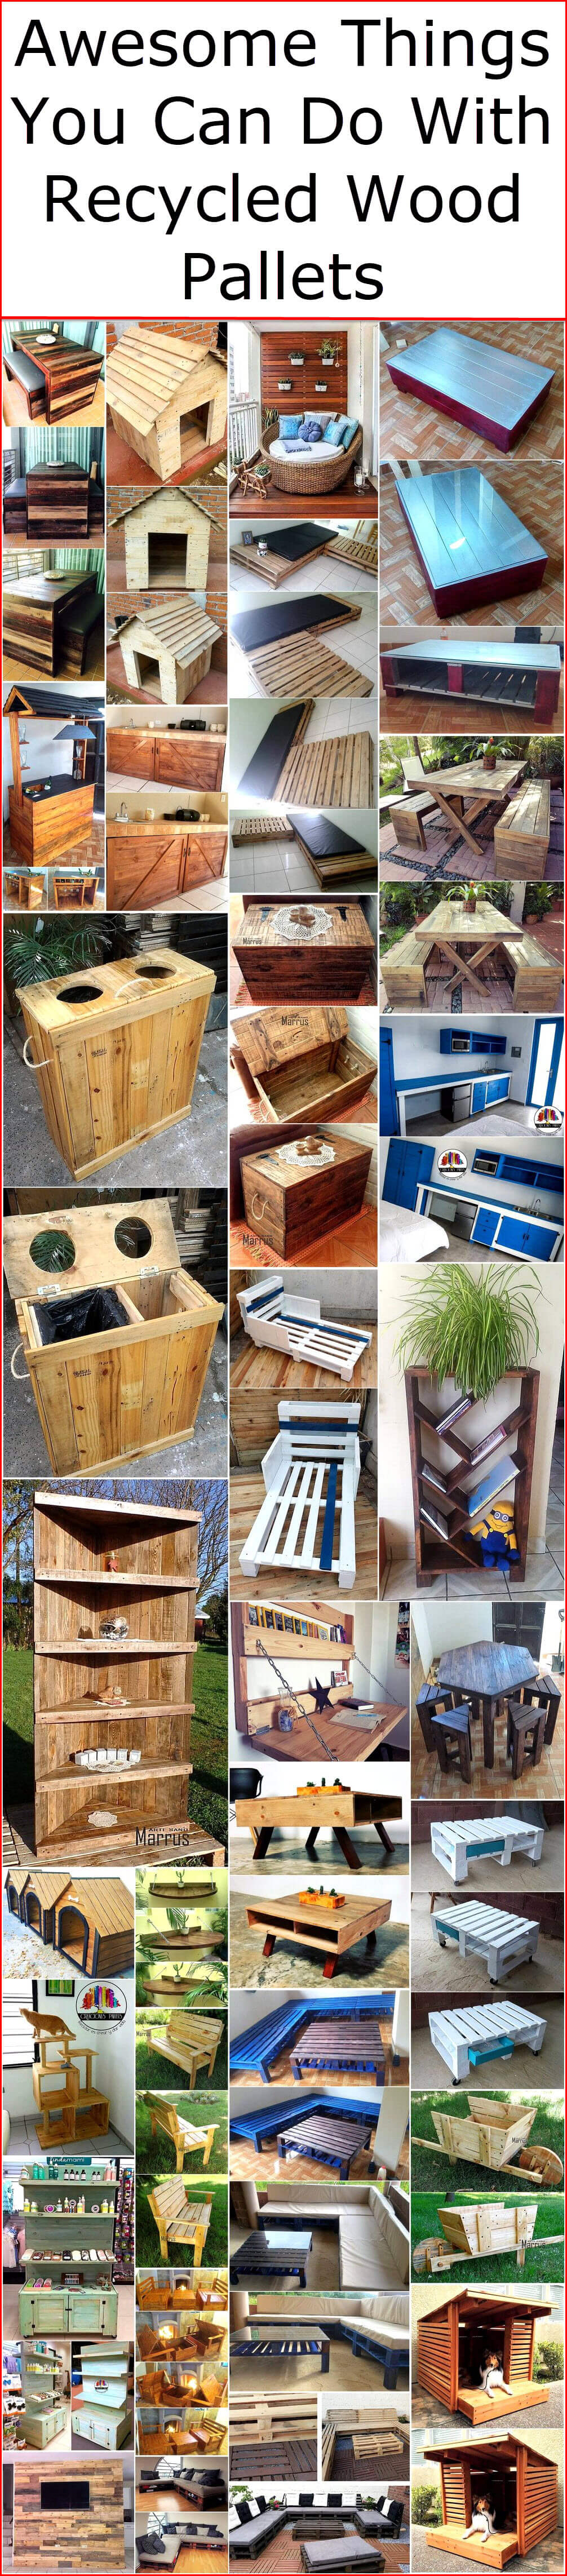 Awesome Things You Can Do With Recycled Wood Pallets